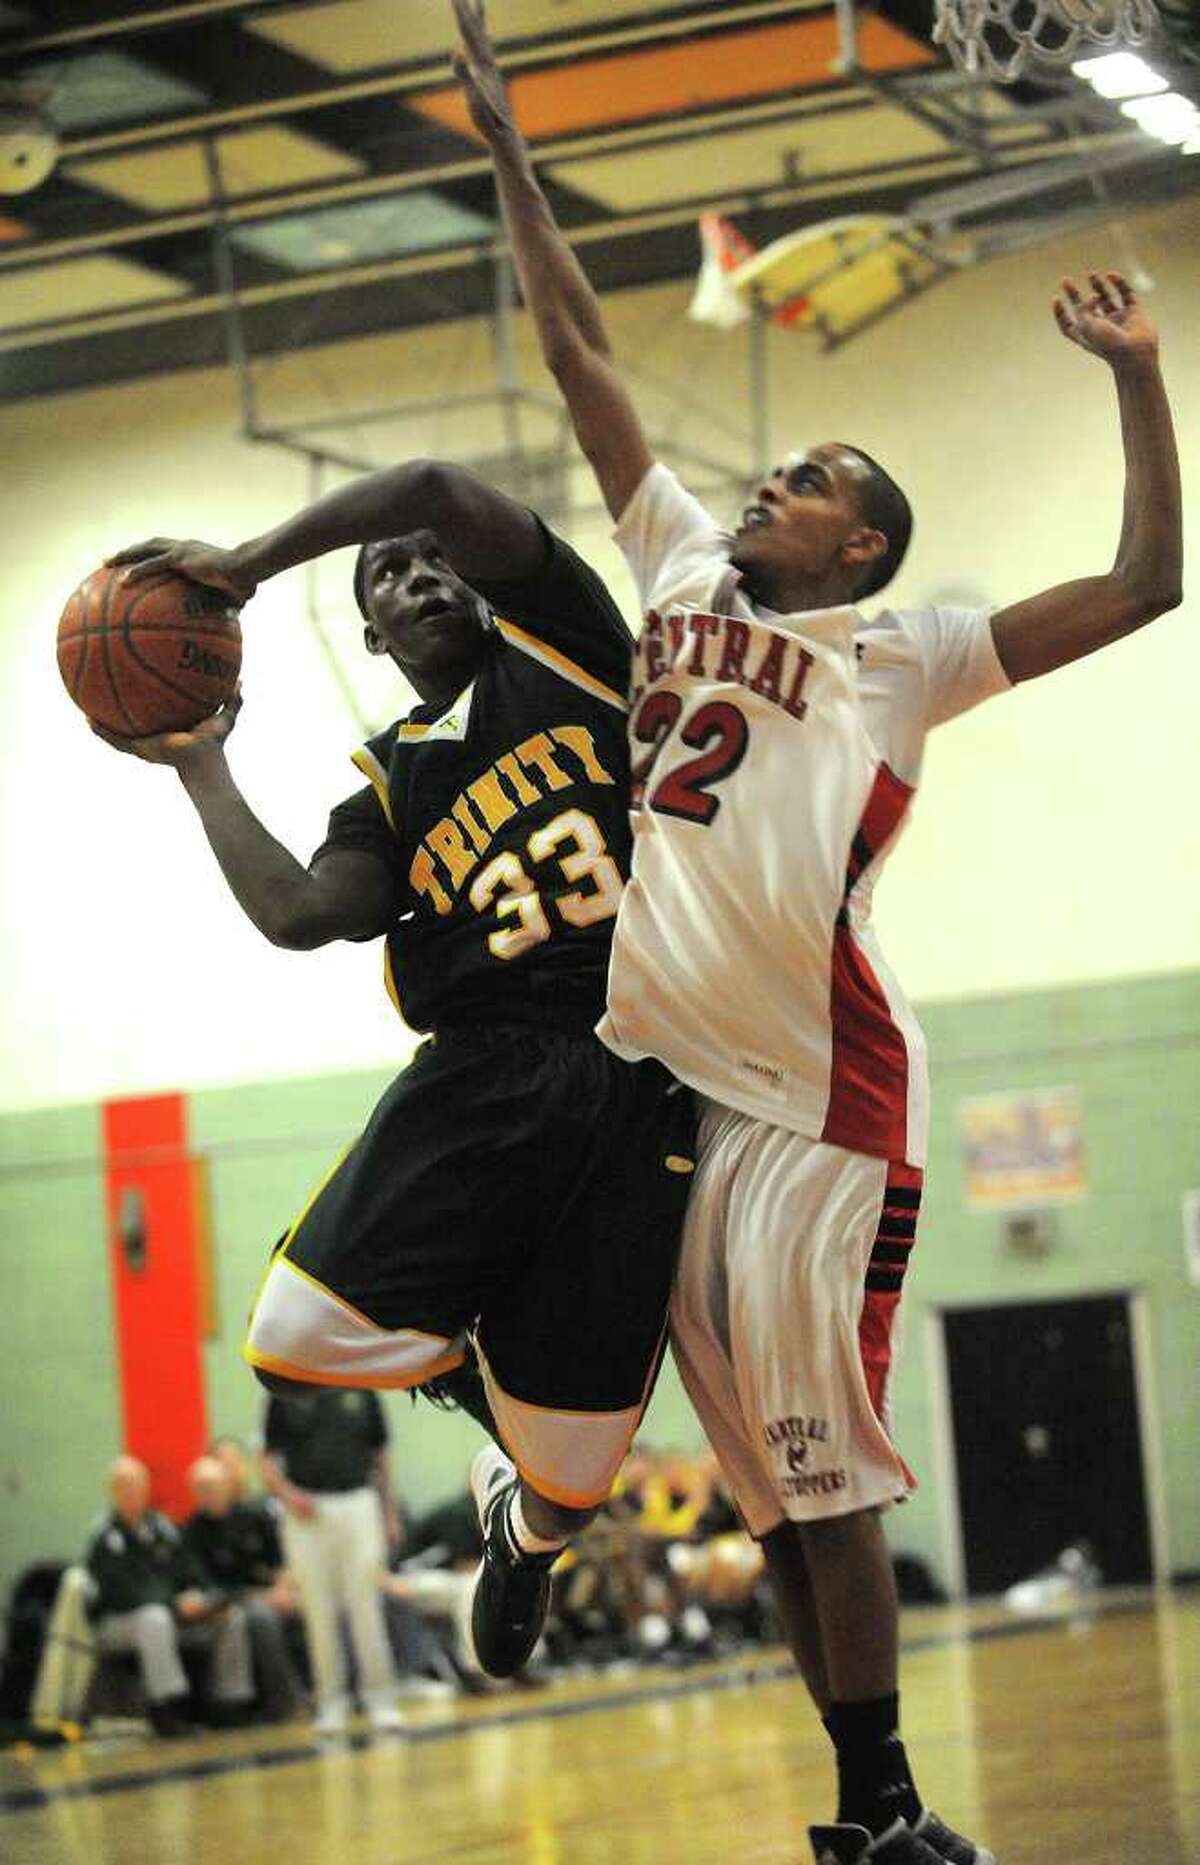 Trinity Catholic's Kevin Leumene, left, drives to the basket defended by Central's Yassar Abdul at Central High School in Bridgeport on Monday, February 20, 2012.